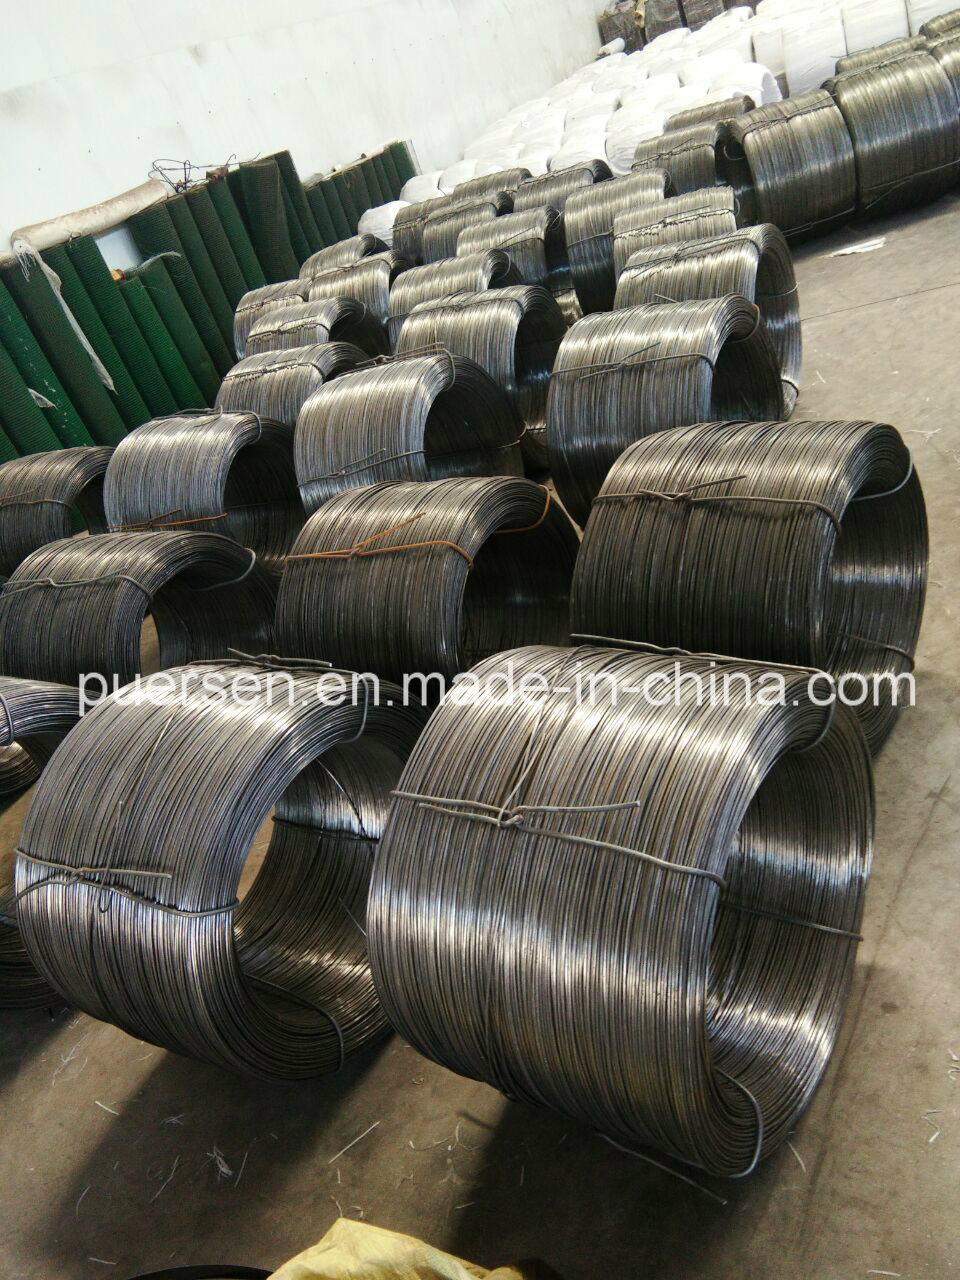 Wholesale Drawn Wire - Buy Reliable Drawn Wire from Drawn Wire ...